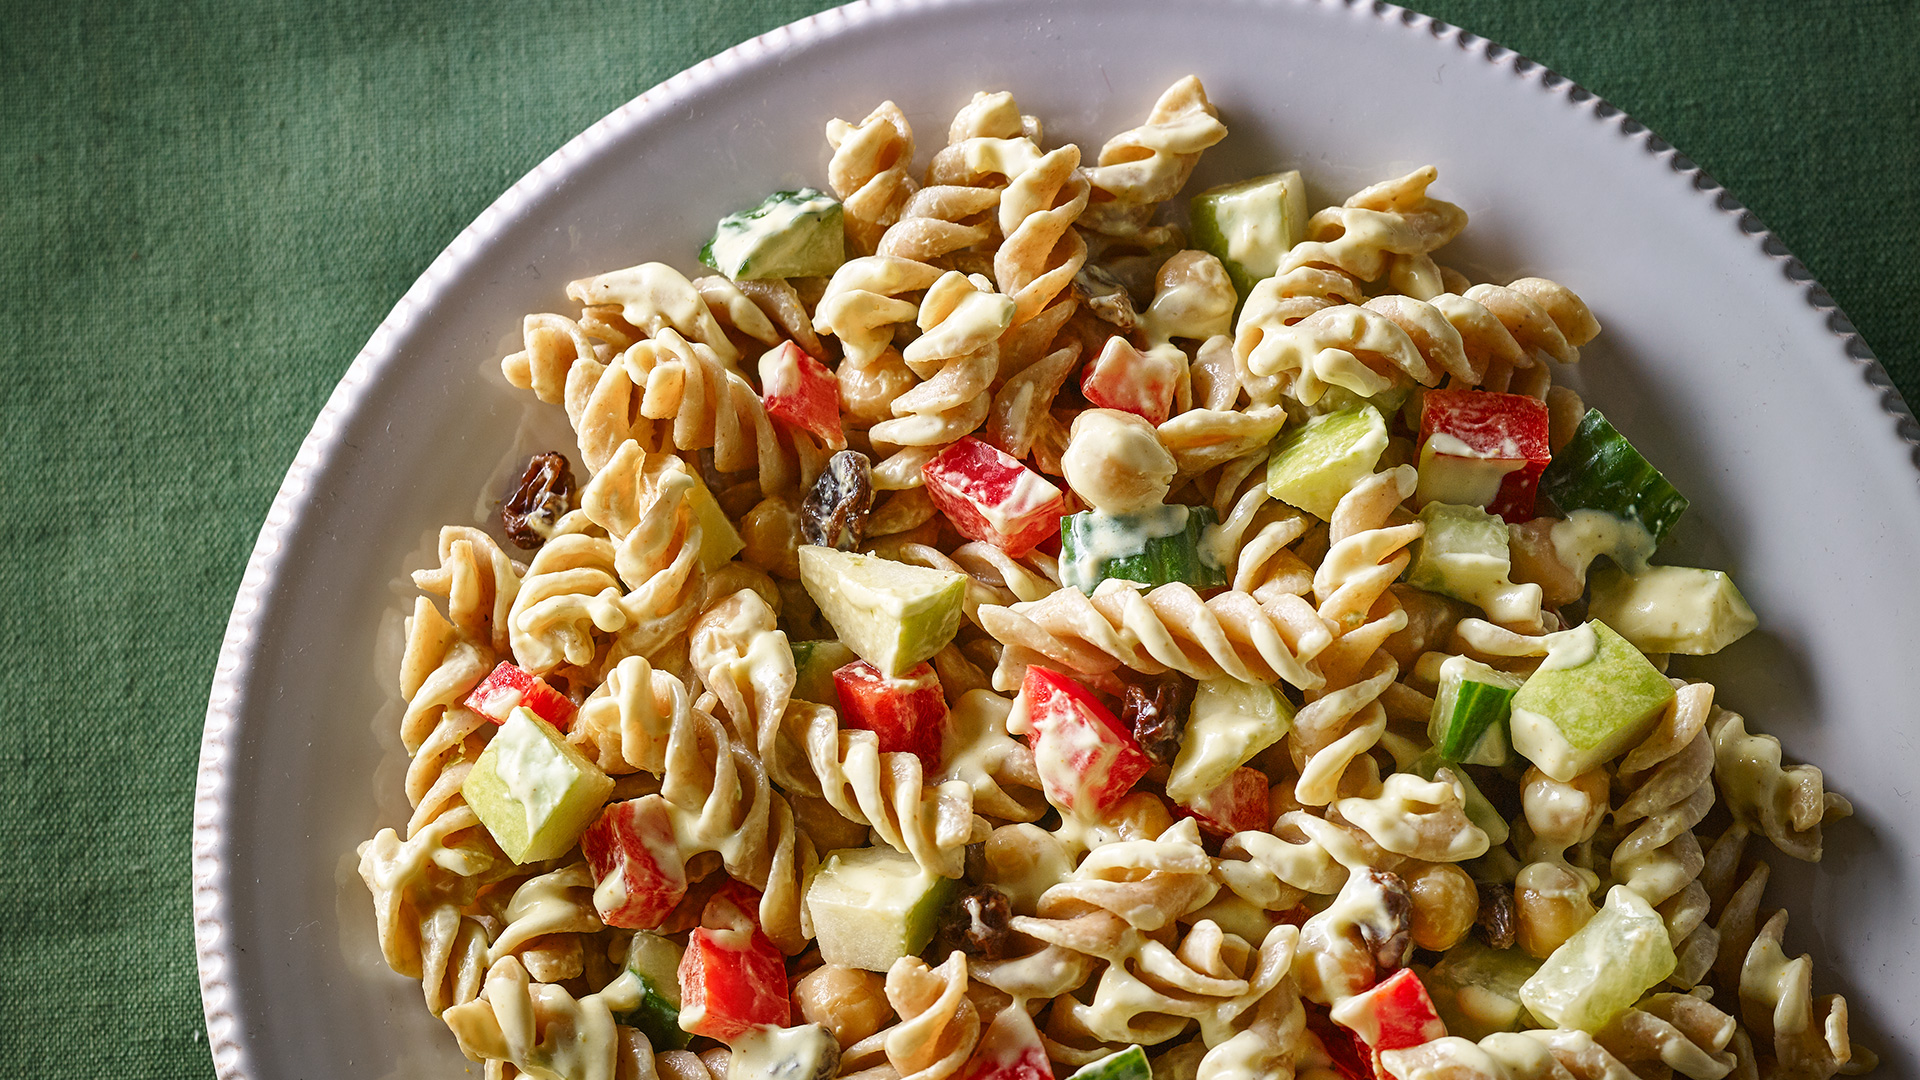 Pasta salad with cucumbers, red peppers, raisins and yogurt dressing